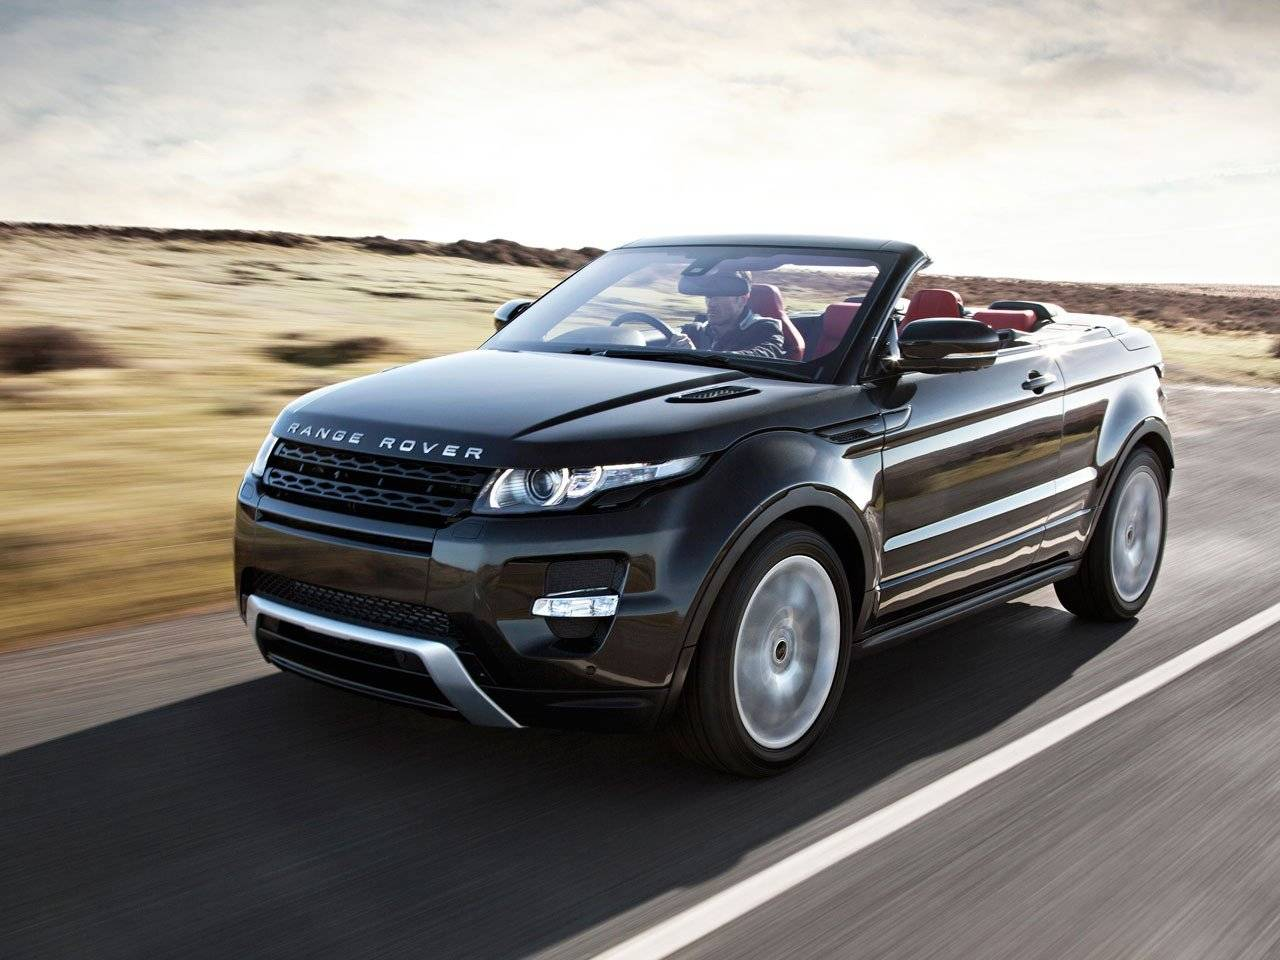 surprise range rover evoque convertible autonieuws. Black Bedroom Furniture Sets. Home Design Ideas